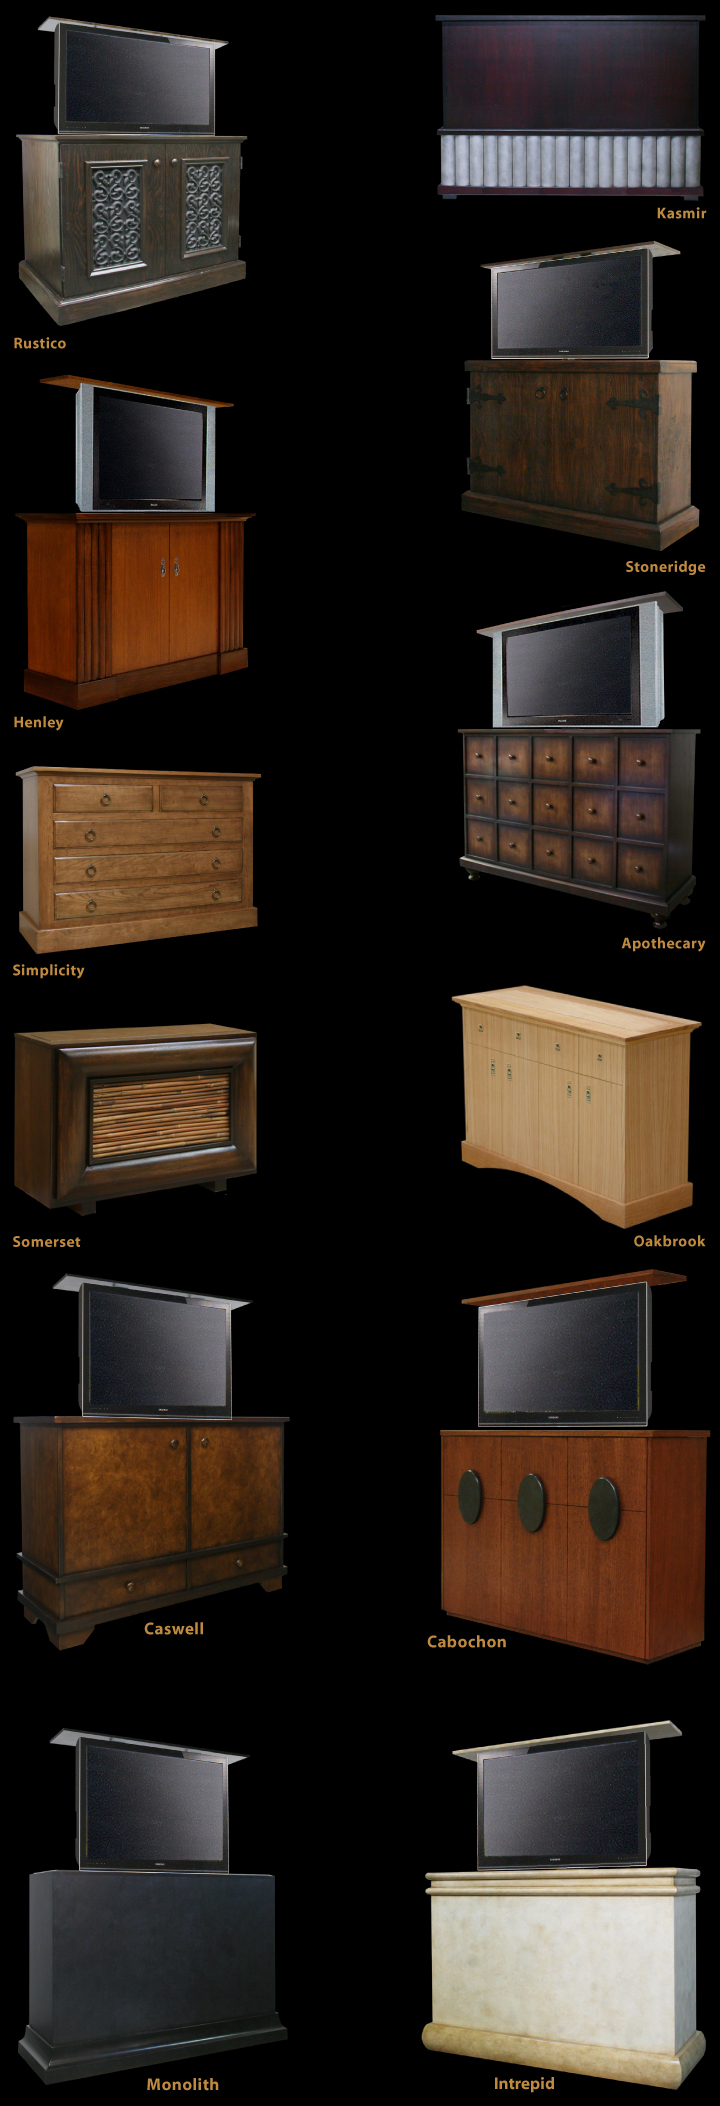 Modern TV Lift Cabinets, Asian TV Lift Cabinets, TV Lift Cabinet Trunks